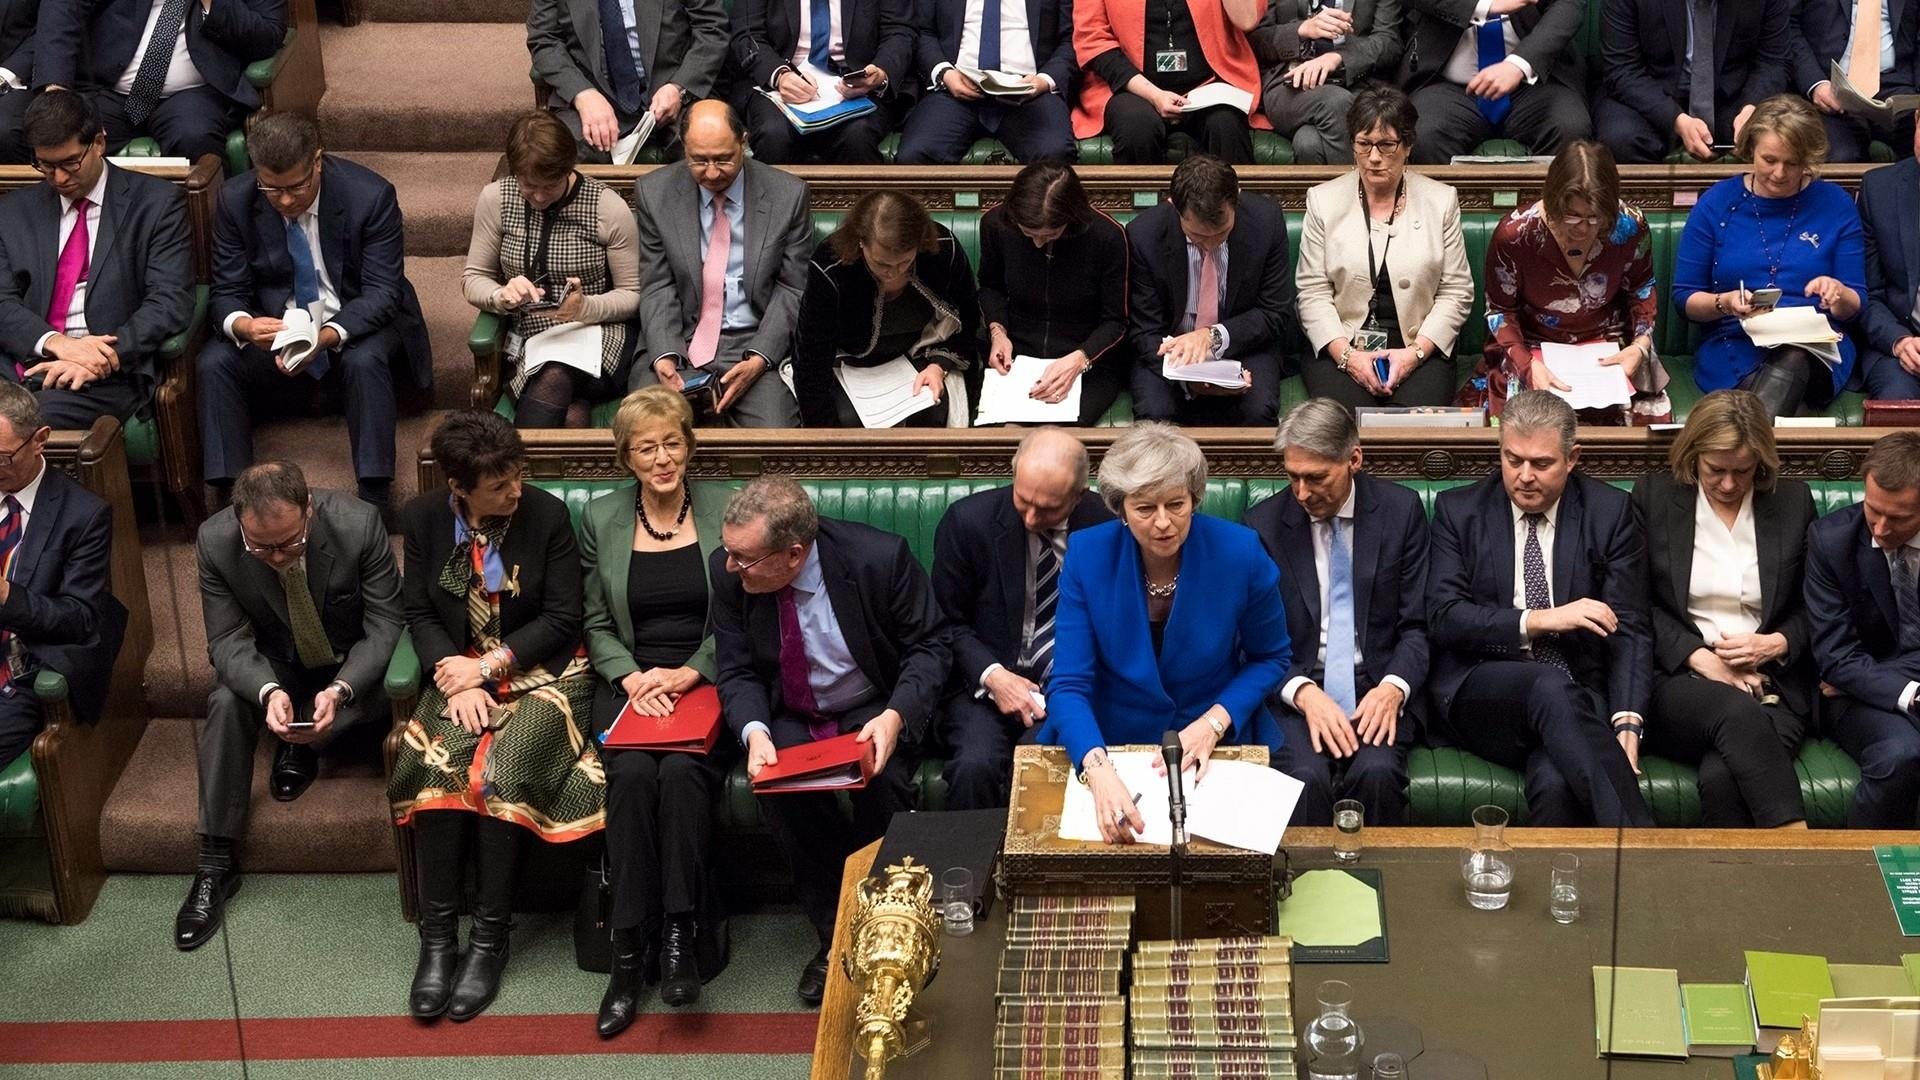 Theresa May narrowly survives no-confidence vote after Brexit plan is crushed